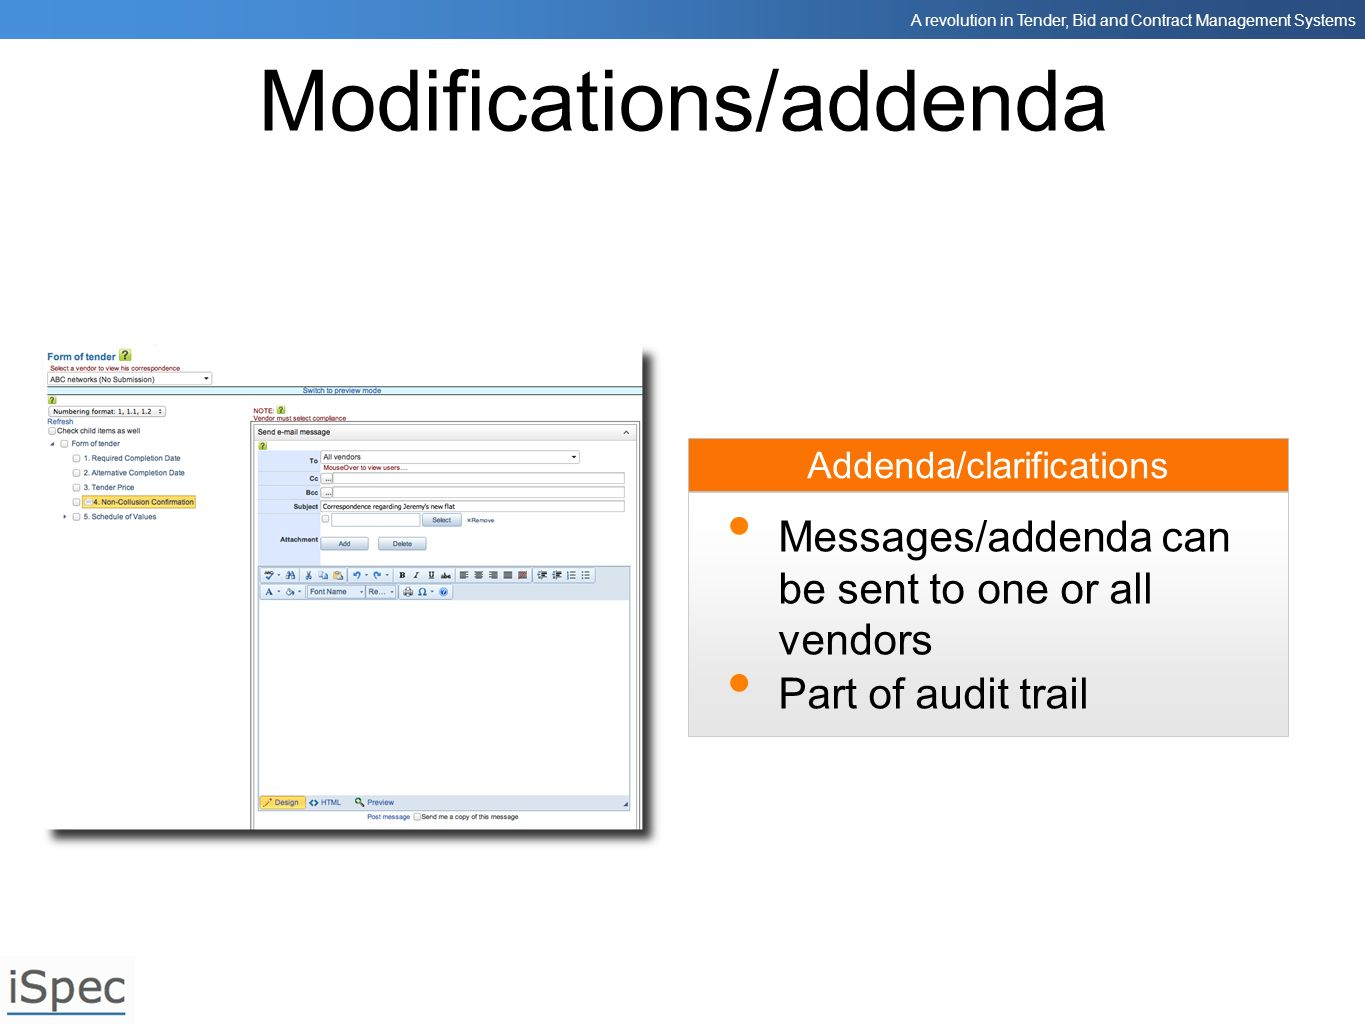 A revolution in Tender, Bid and Contract Management Systems Addenda/clarifications Modifications/addenda Messages/addenda can be sent to one or all ve